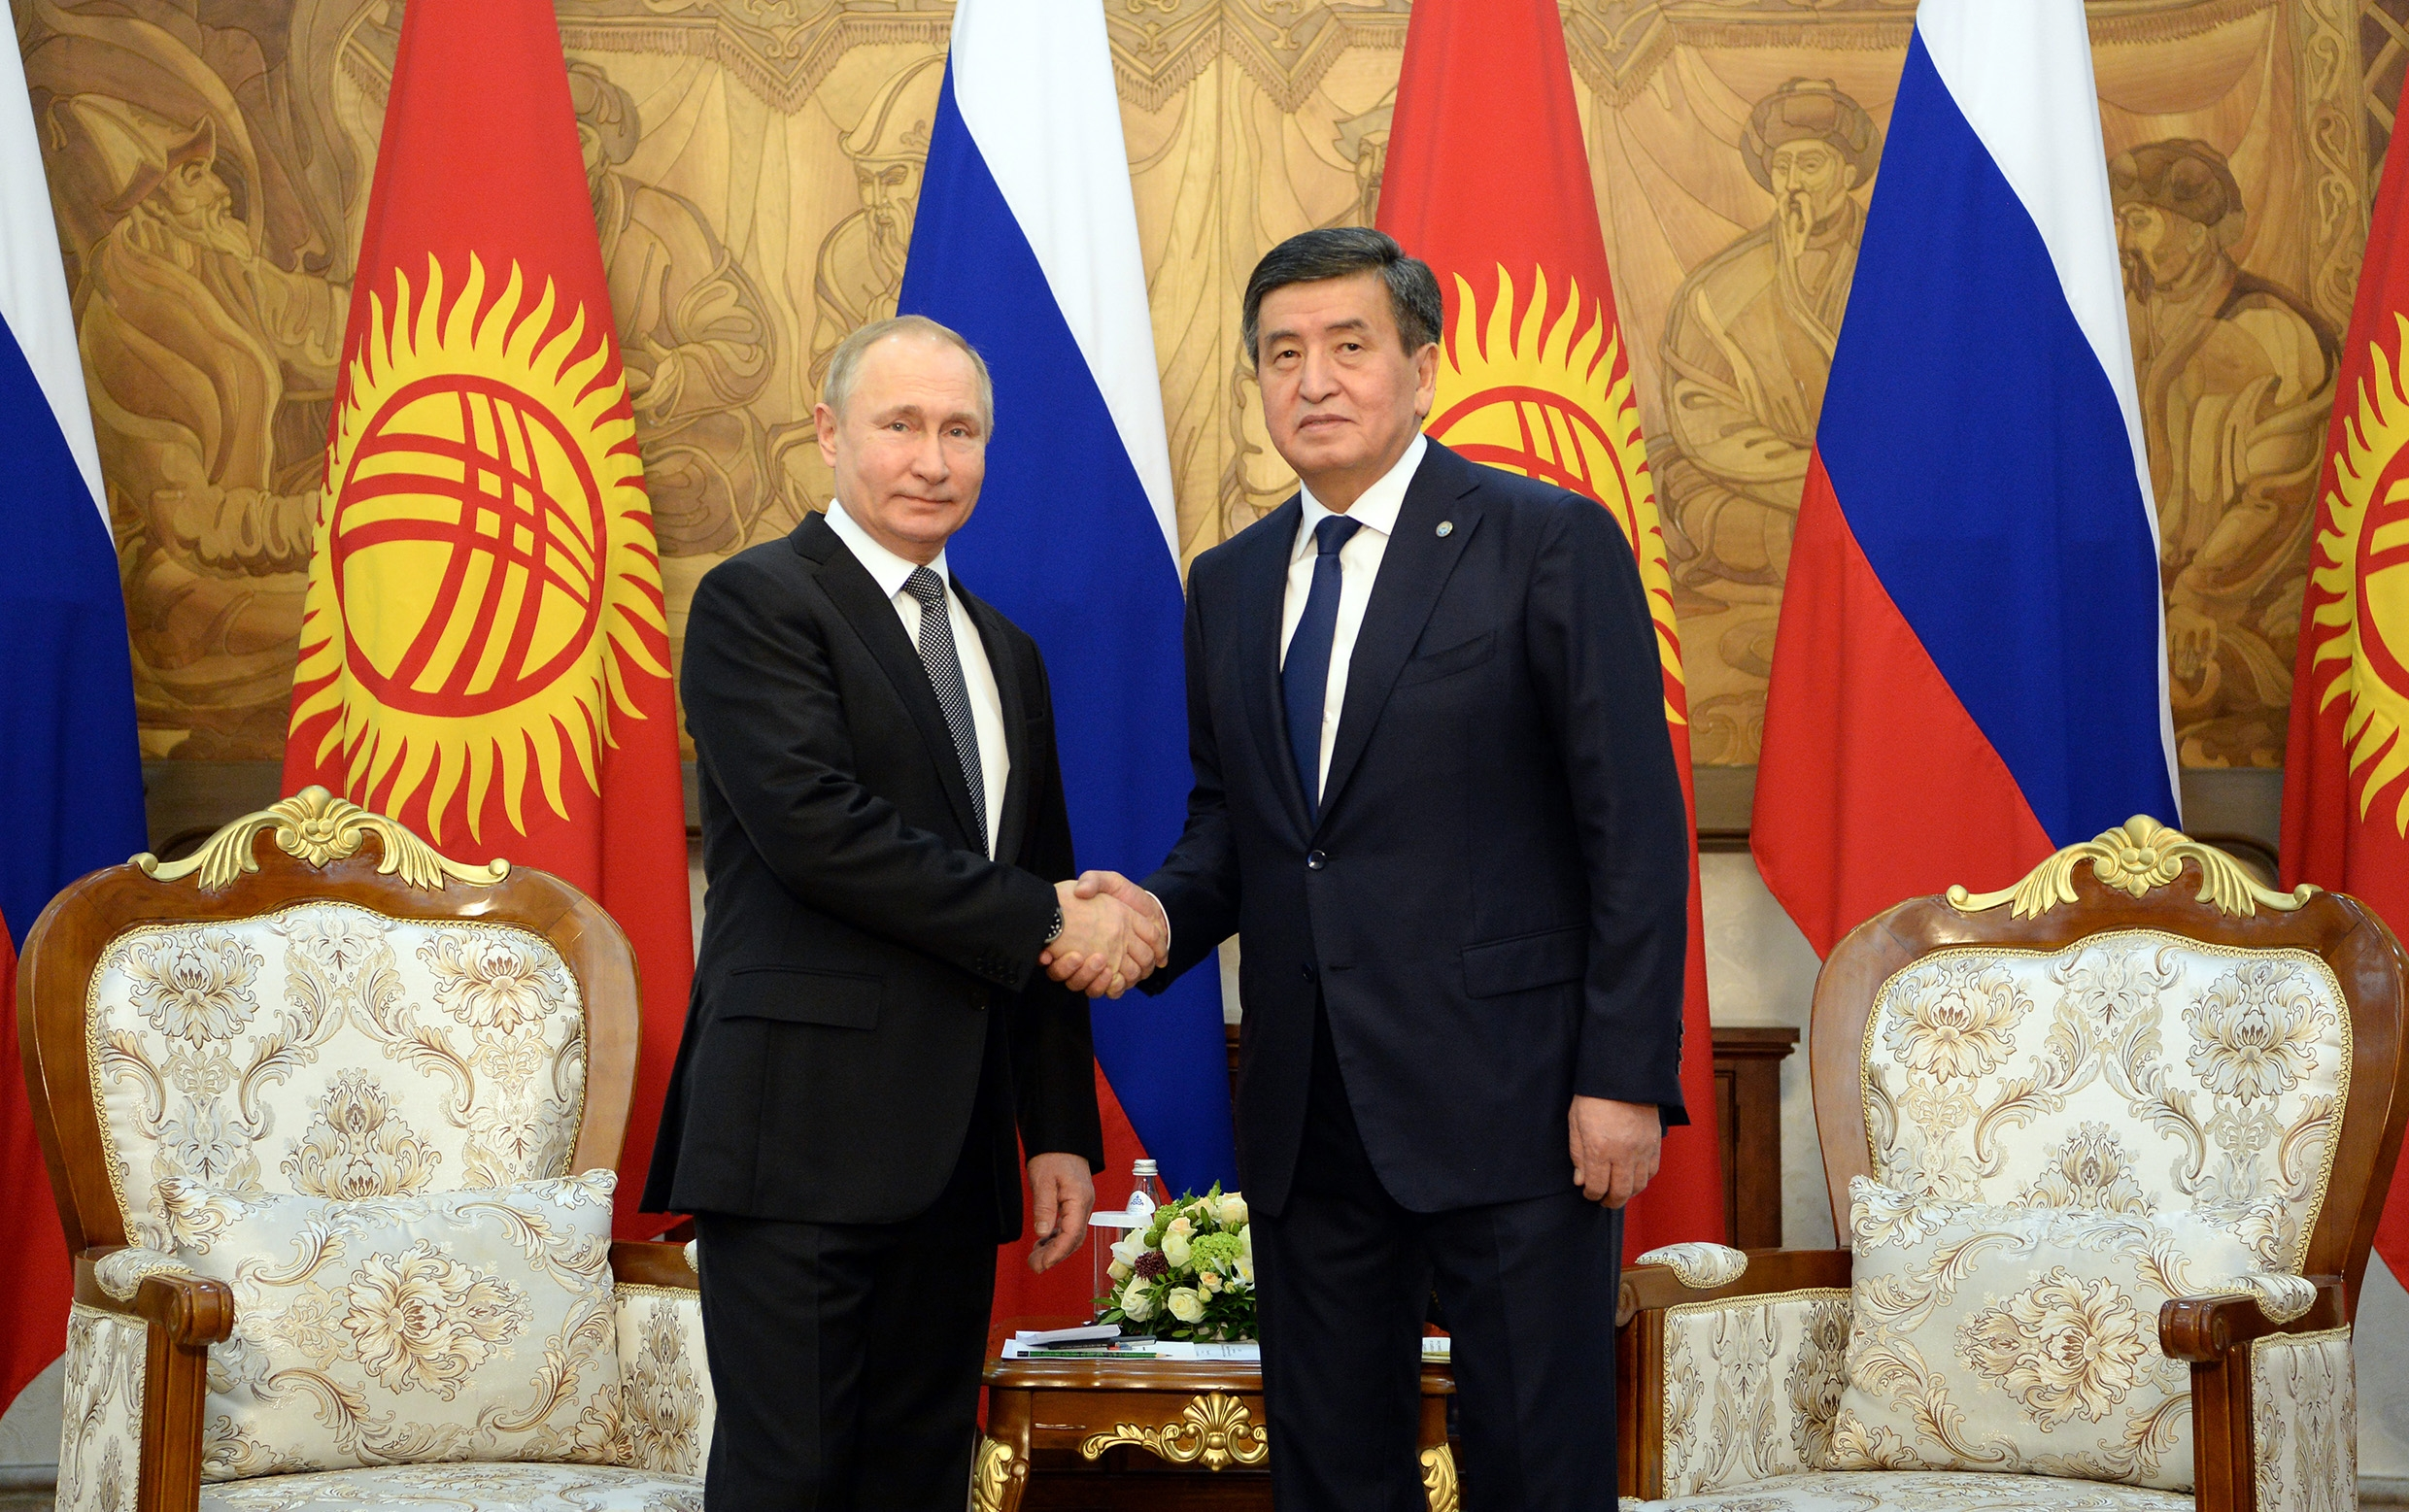 It's a deal: Putin and Jeenbekov shaking on it in Bishkek on March 28. (Photo: Kyrgyz presidential administration)